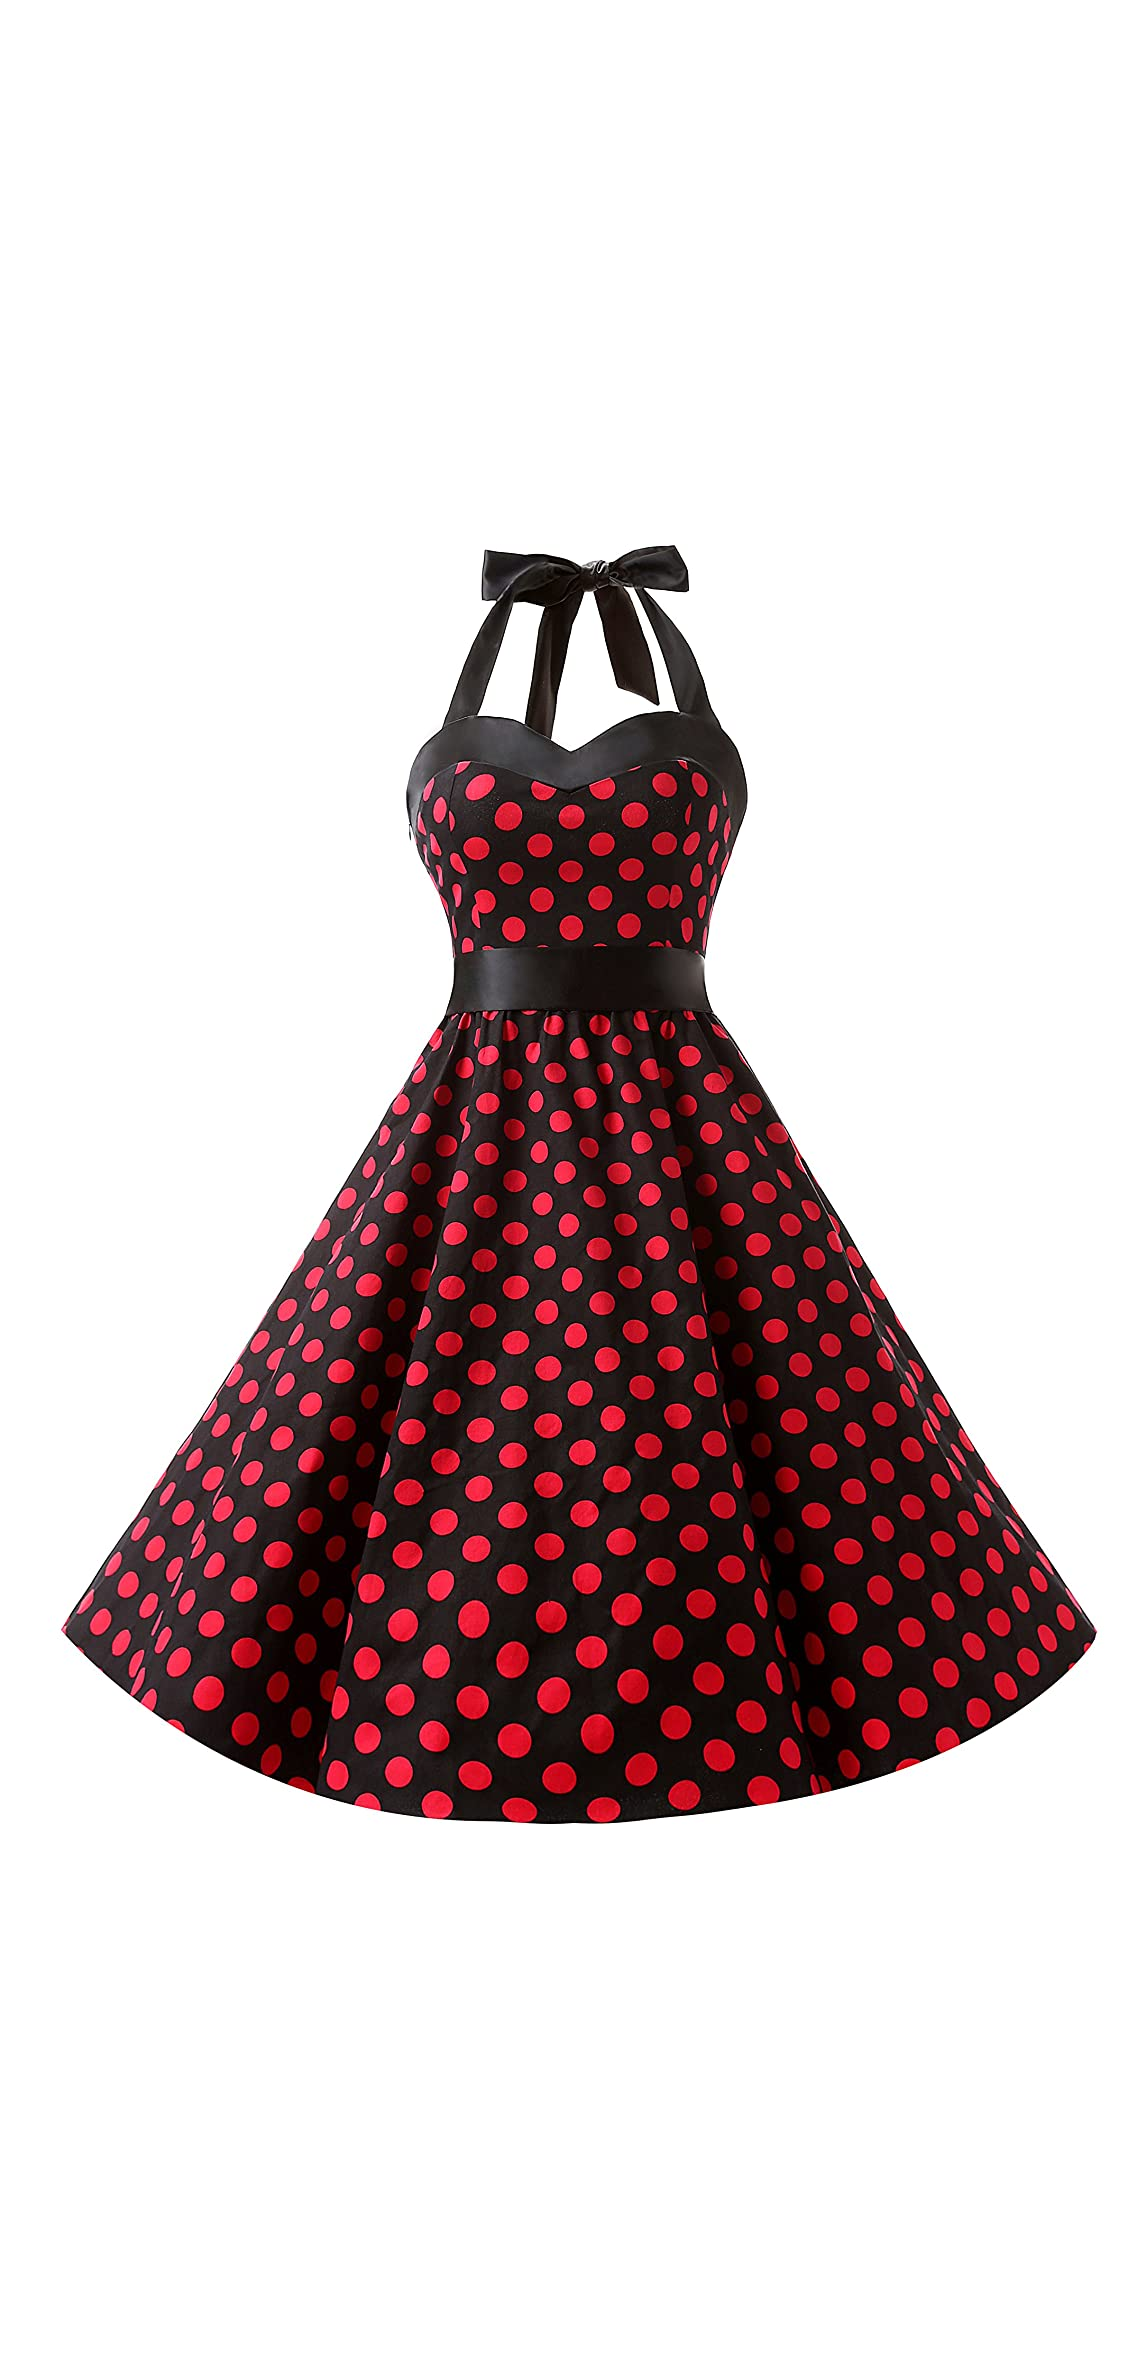 Vintage S Rockabilly Polka Dots Audrey Dress